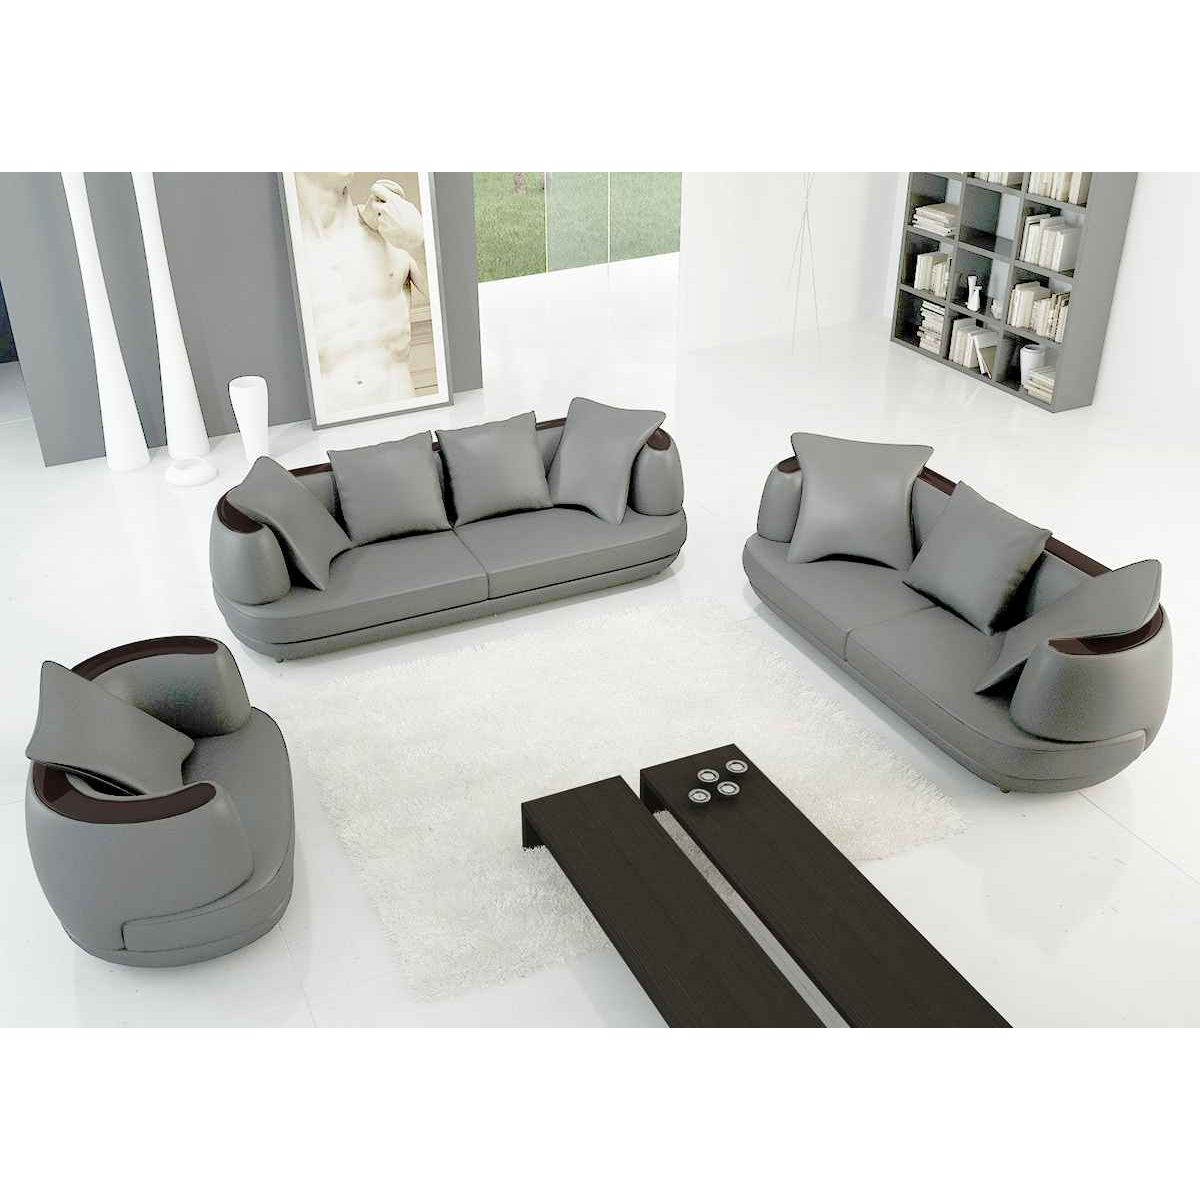 Deco in paris ensemble canape 3 2 1 places en cuir gris for Salon canape et 2 fauteuils